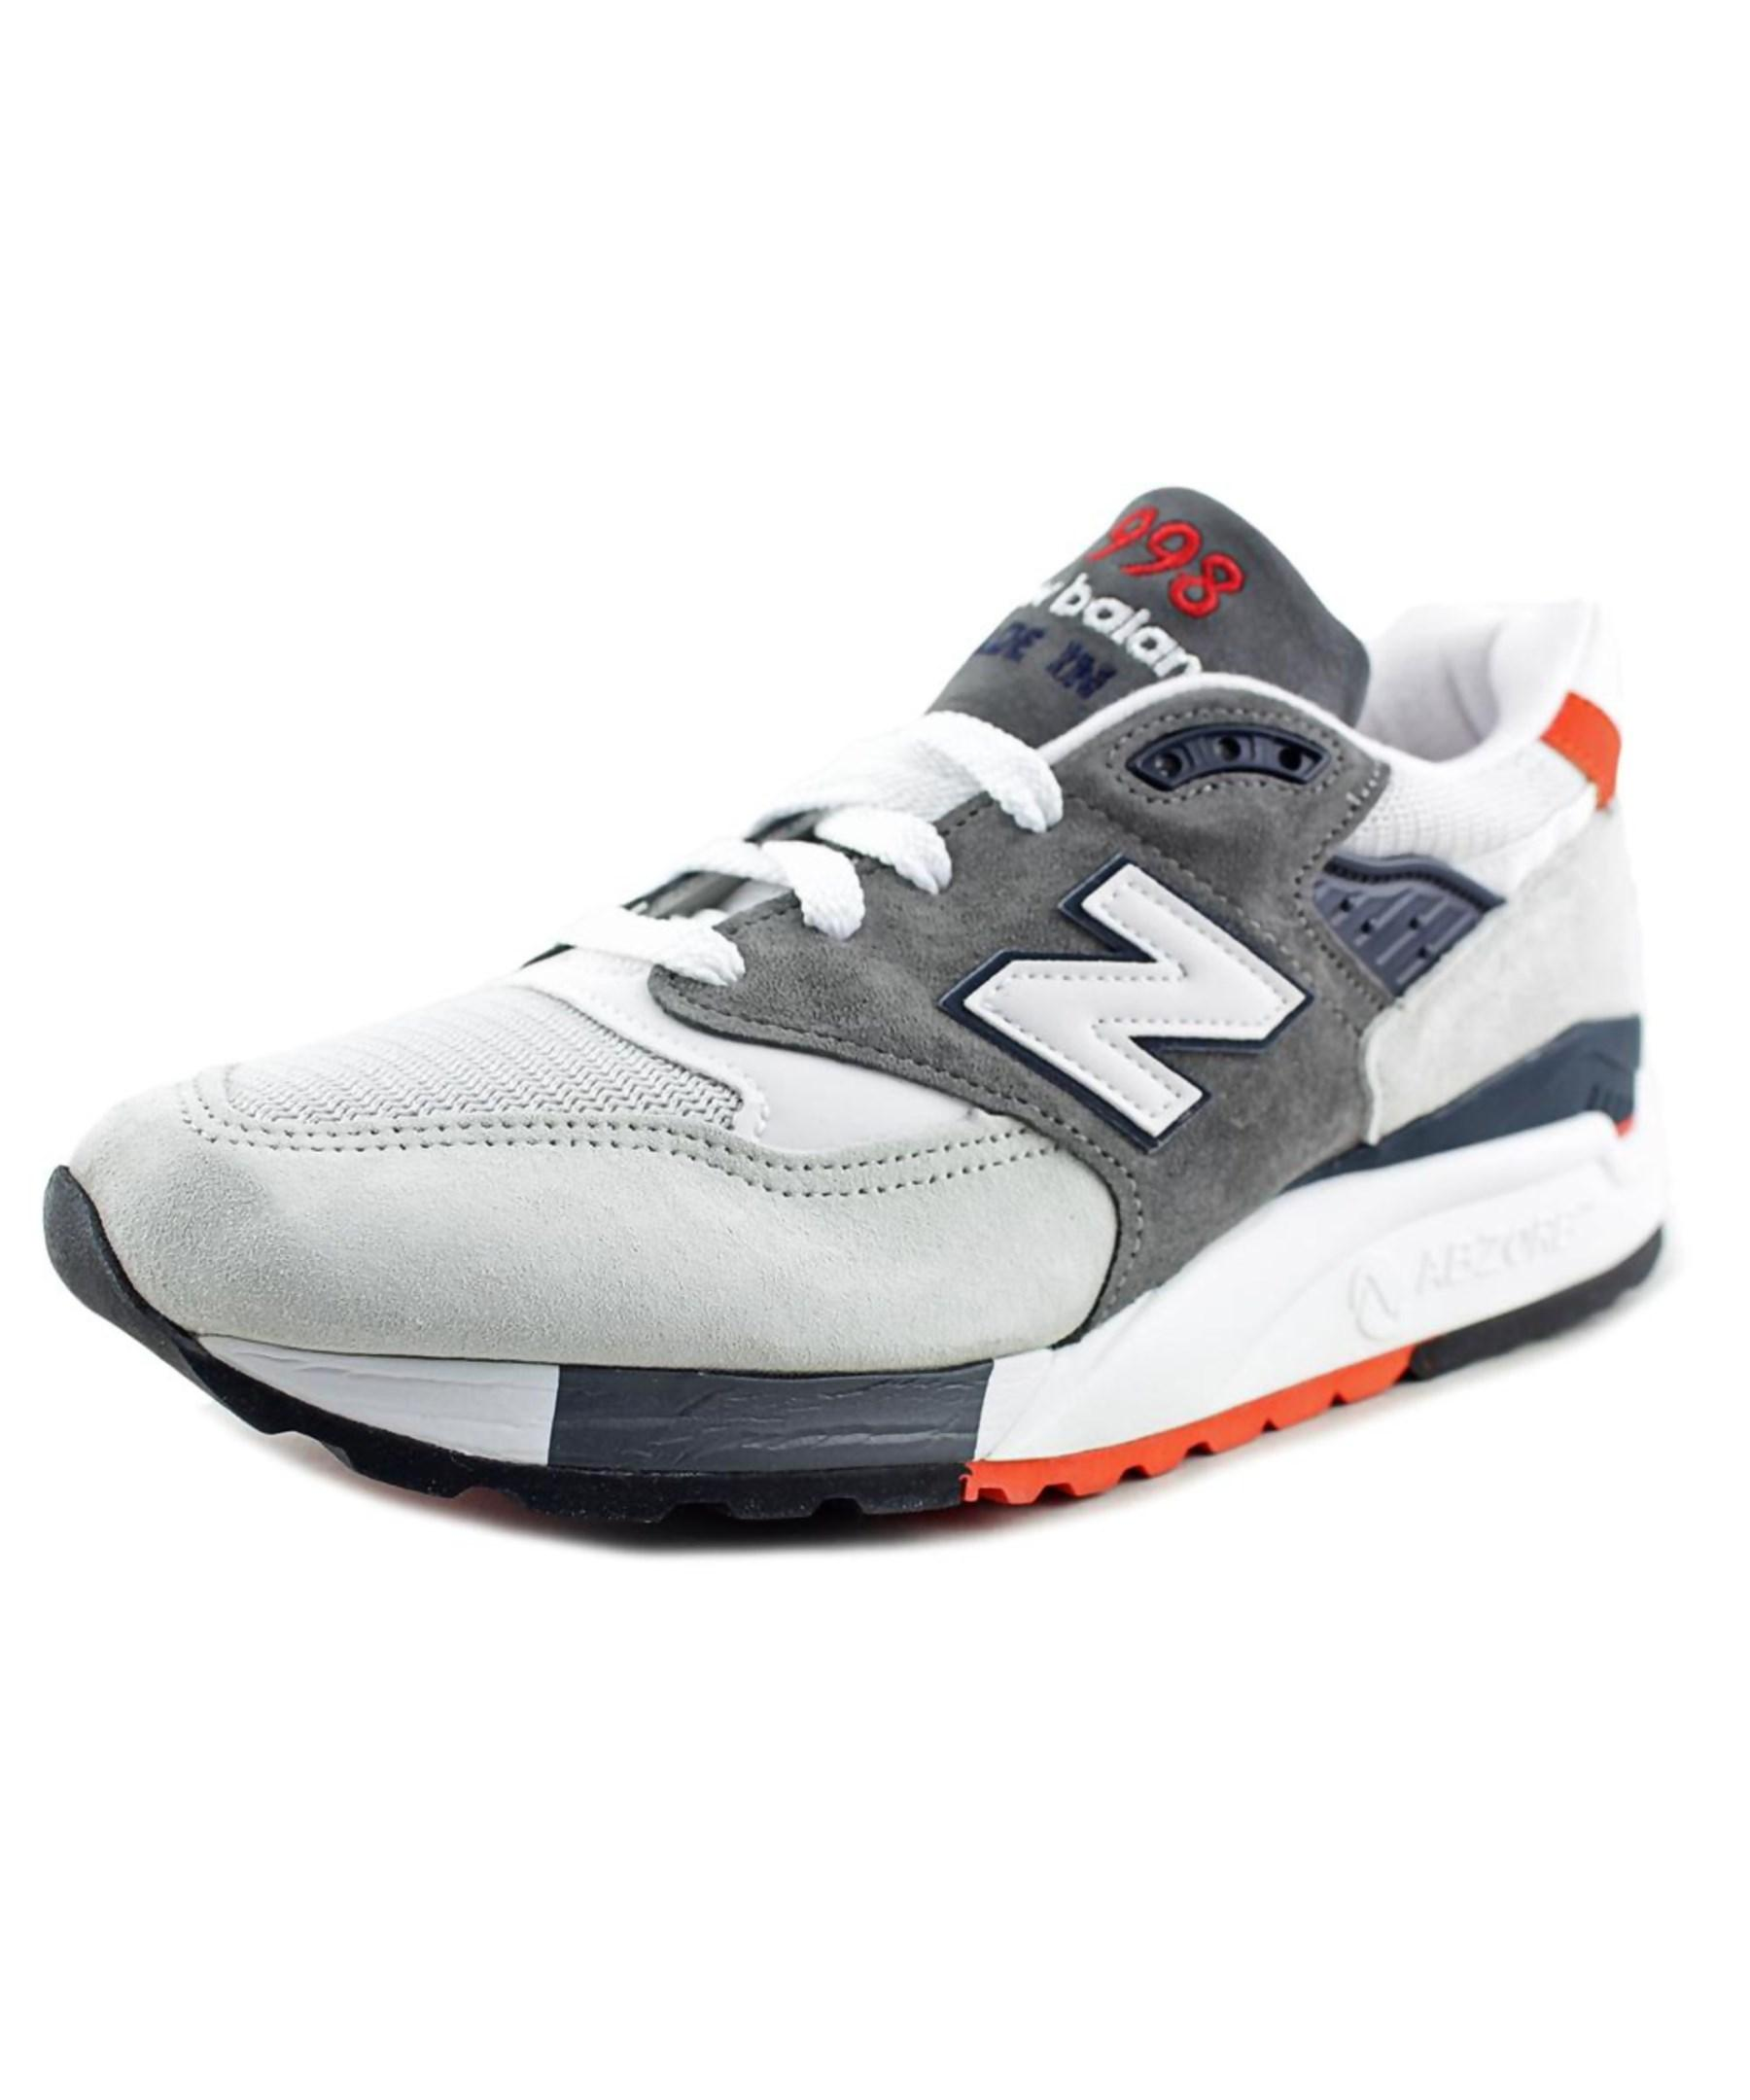 new balance m998 toe suede tennis shoe in gray